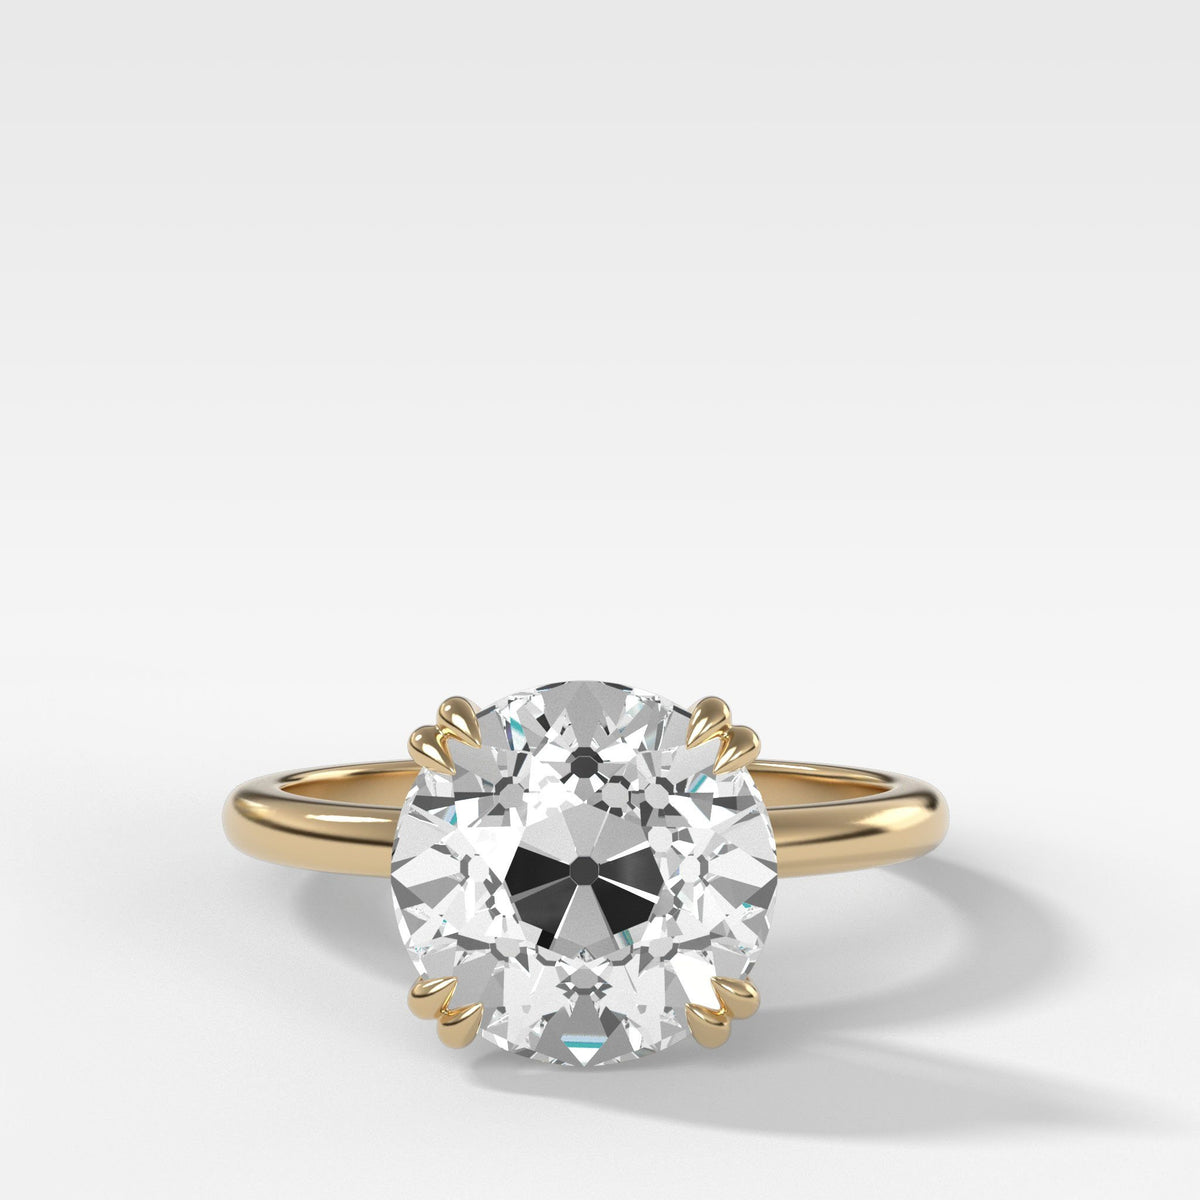 Signature Cathedral Solitaire With Old Euro Cut in Yellow Gold by Good Stone